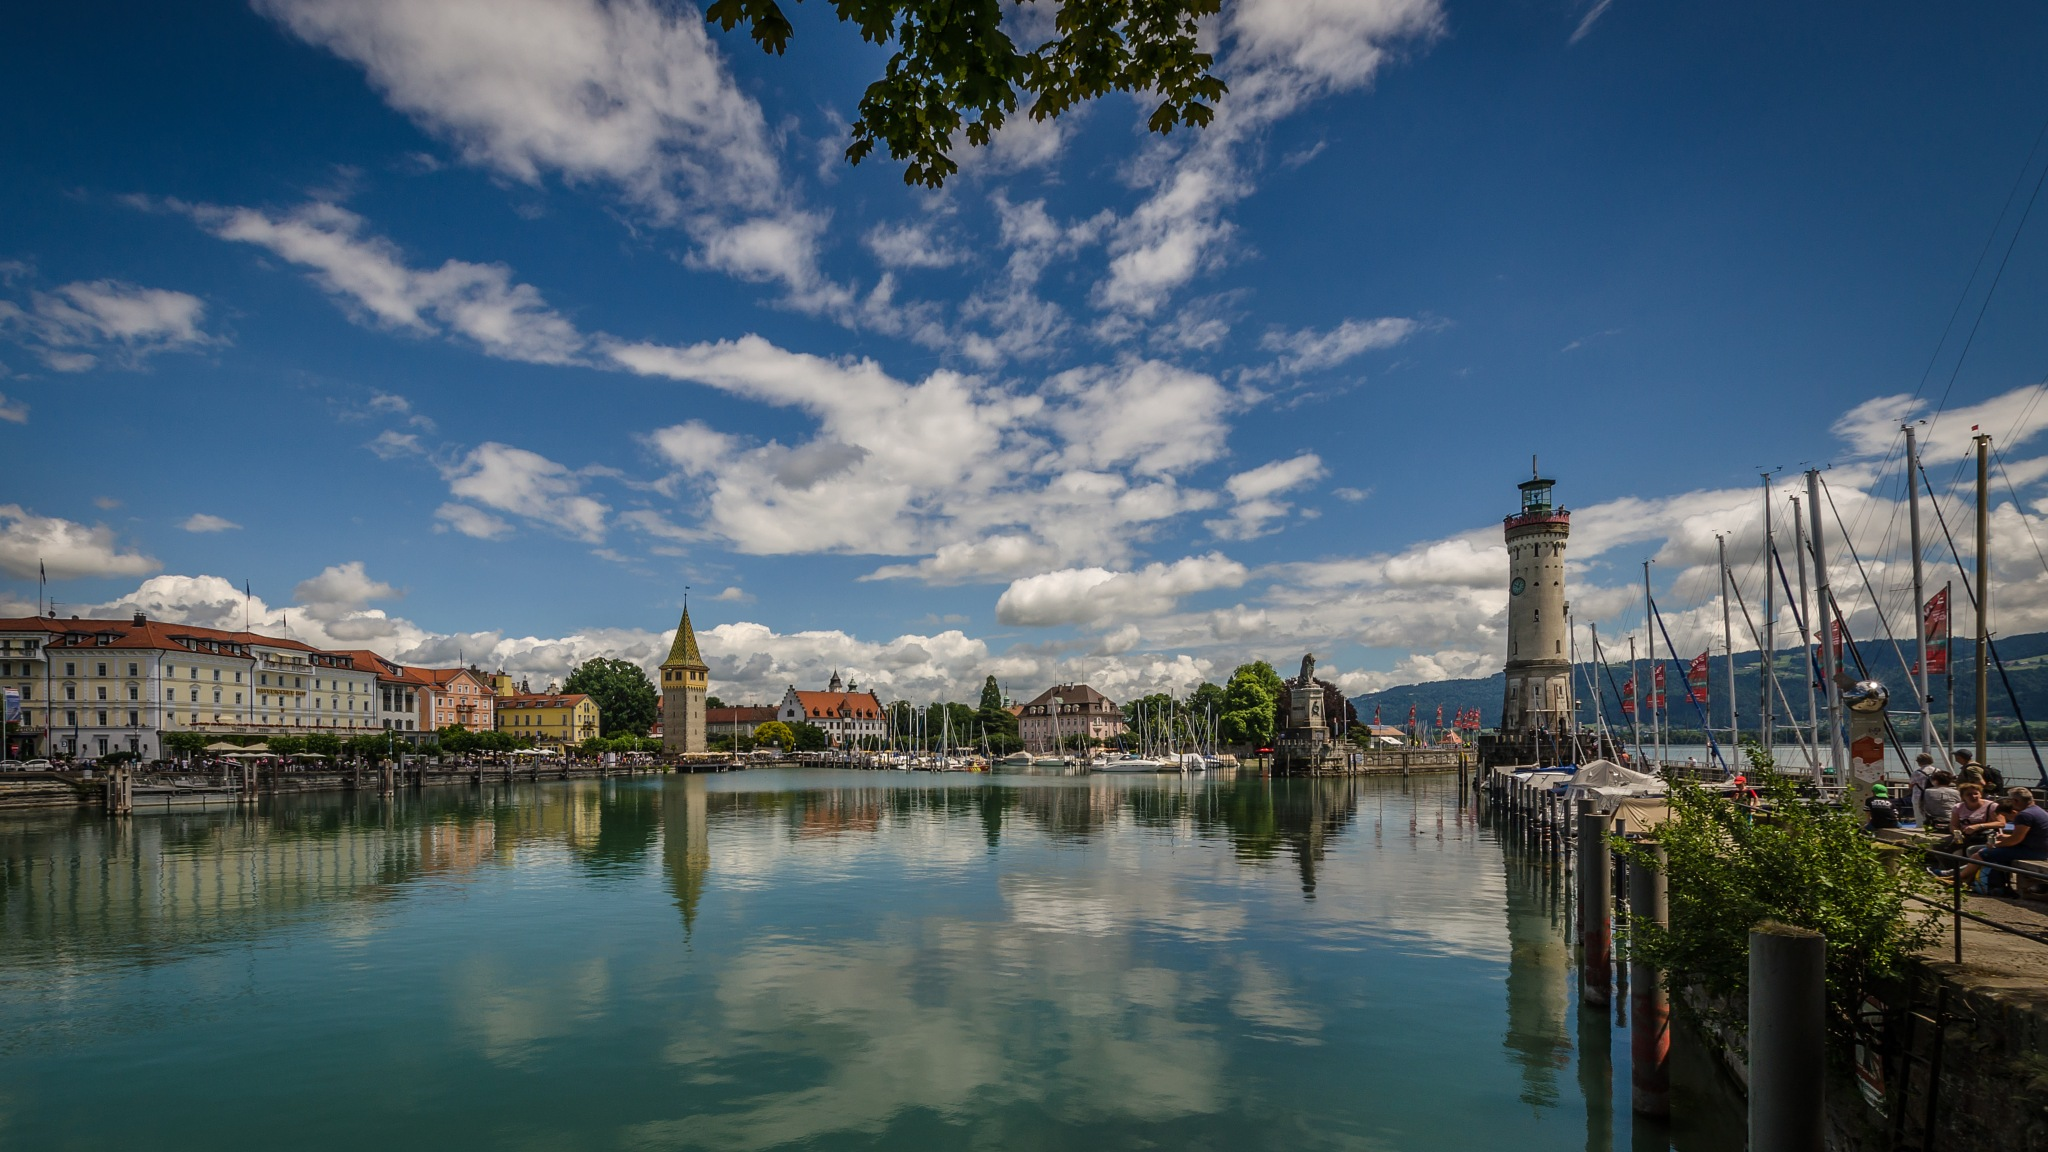 Harbour - Lindau Lake Constance by Peter Müller